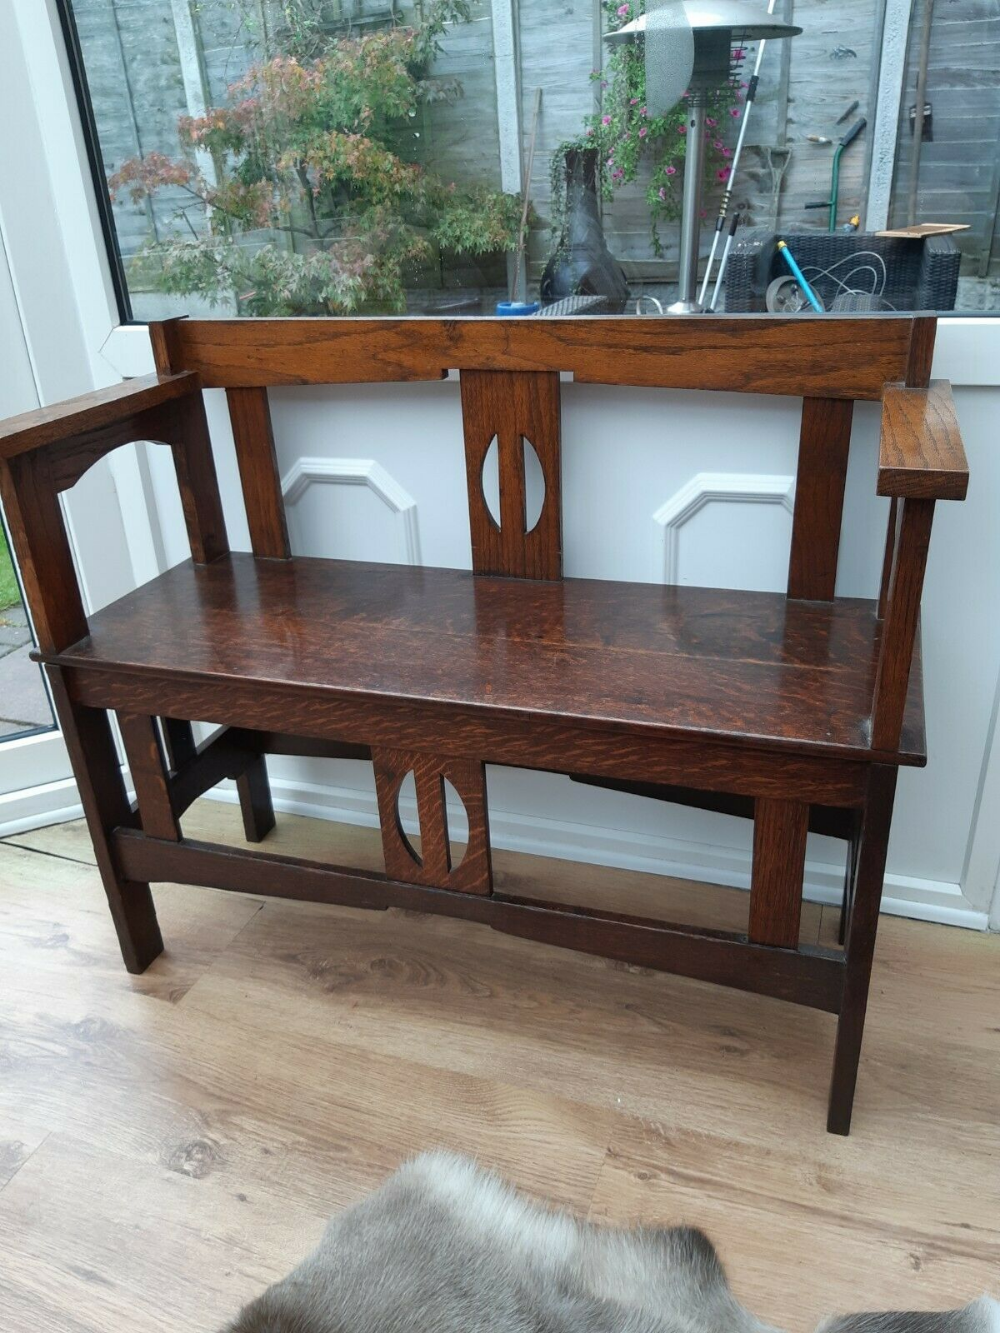 Details about Arts And Craft tiger oak bench Oak bench